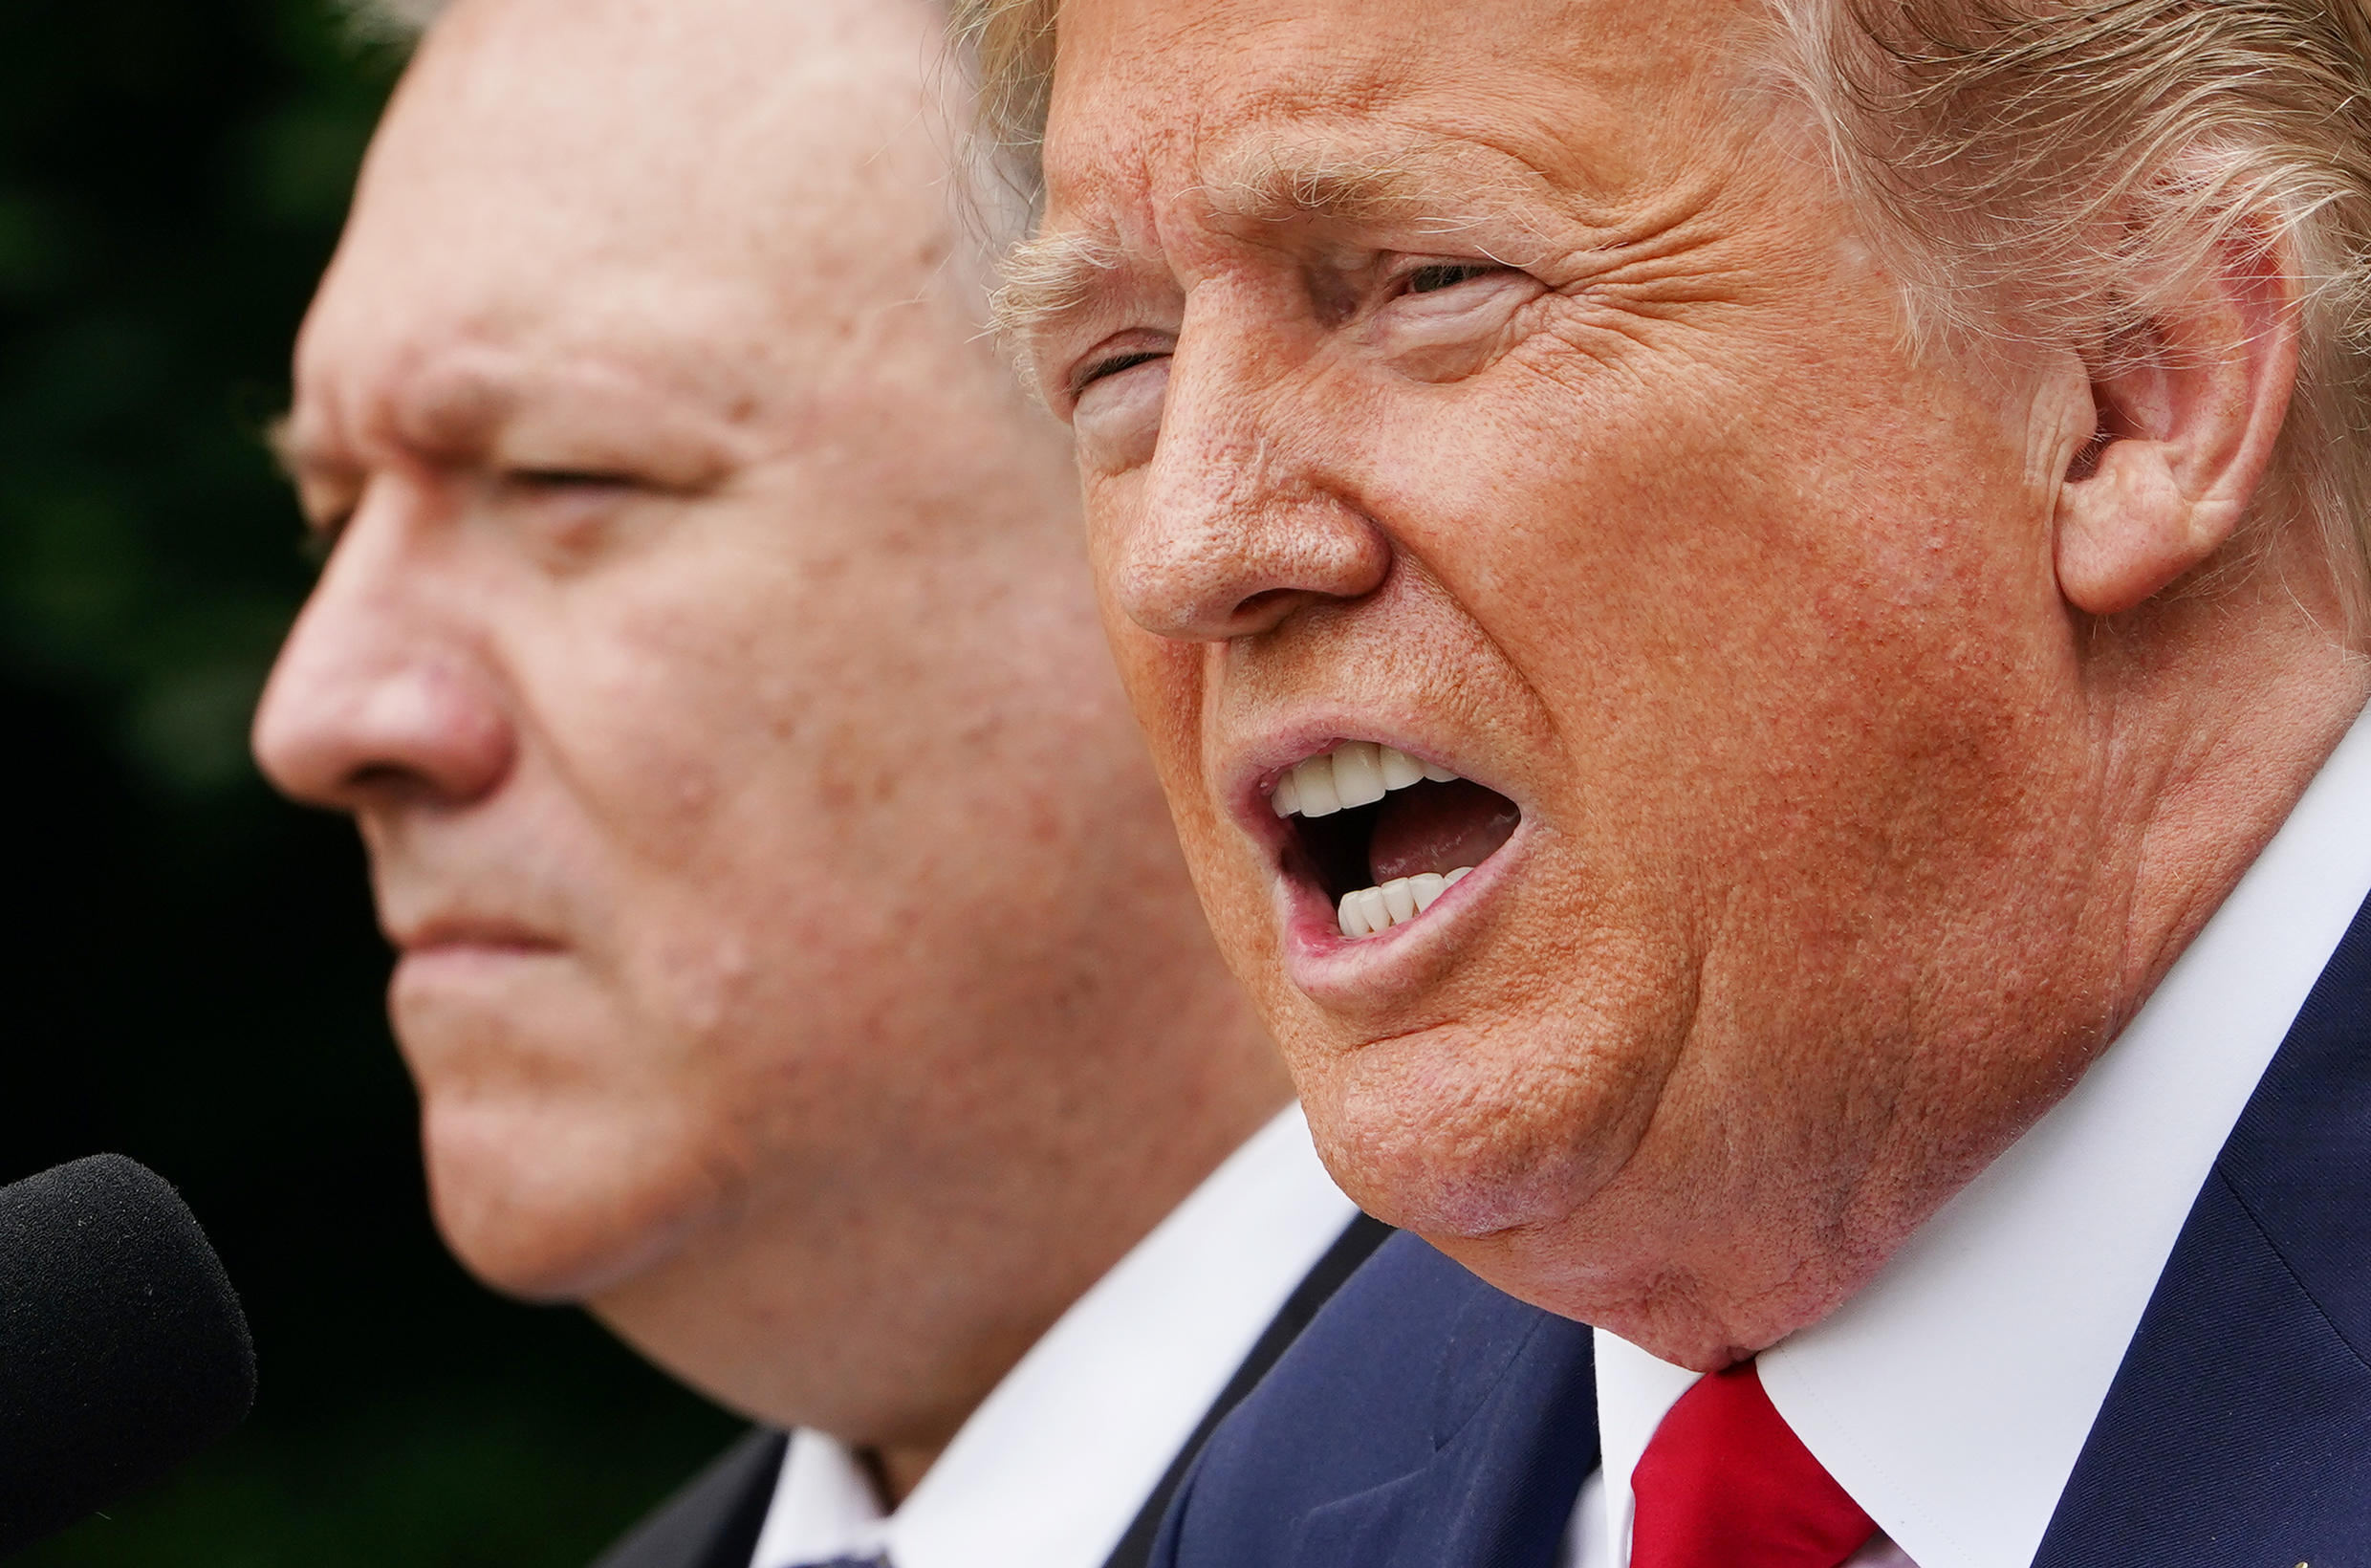 The cancelled diplomatic trips round off four tumultuous years of foreign policy under President Donald Trump that tested Washington's traditional allies in both Europe and Asia